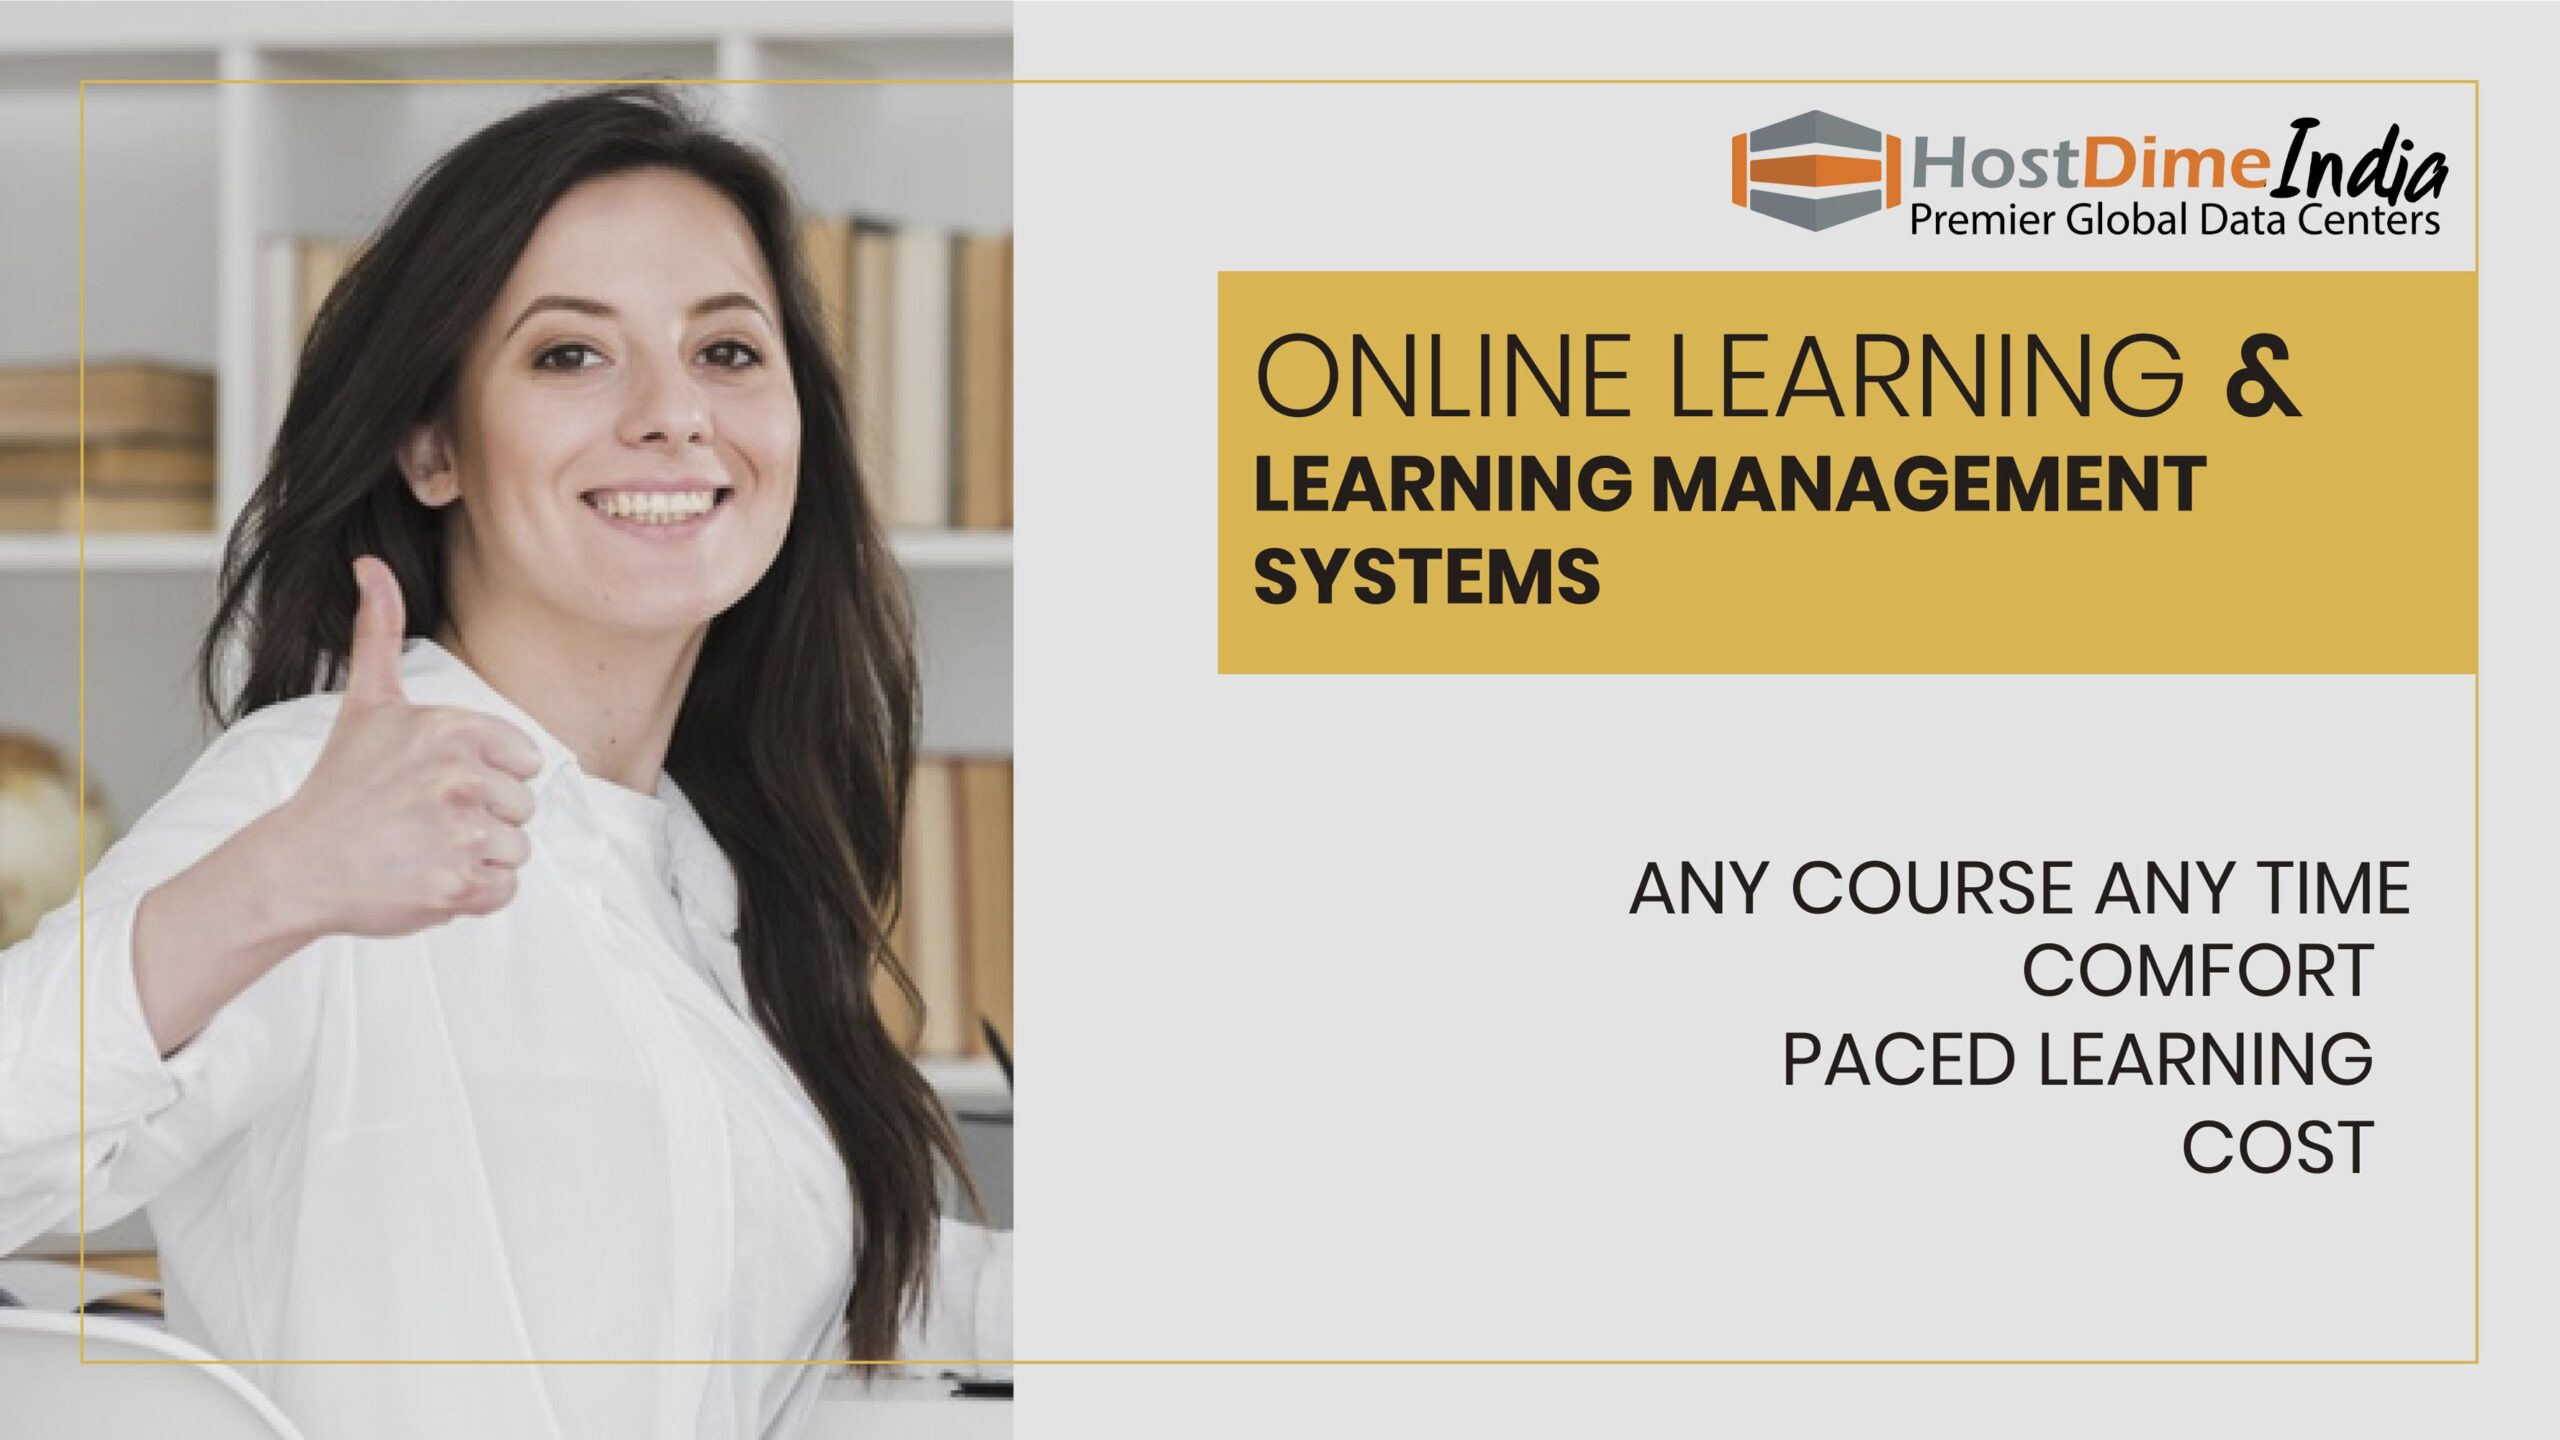 Online learning and Learning Management Systems